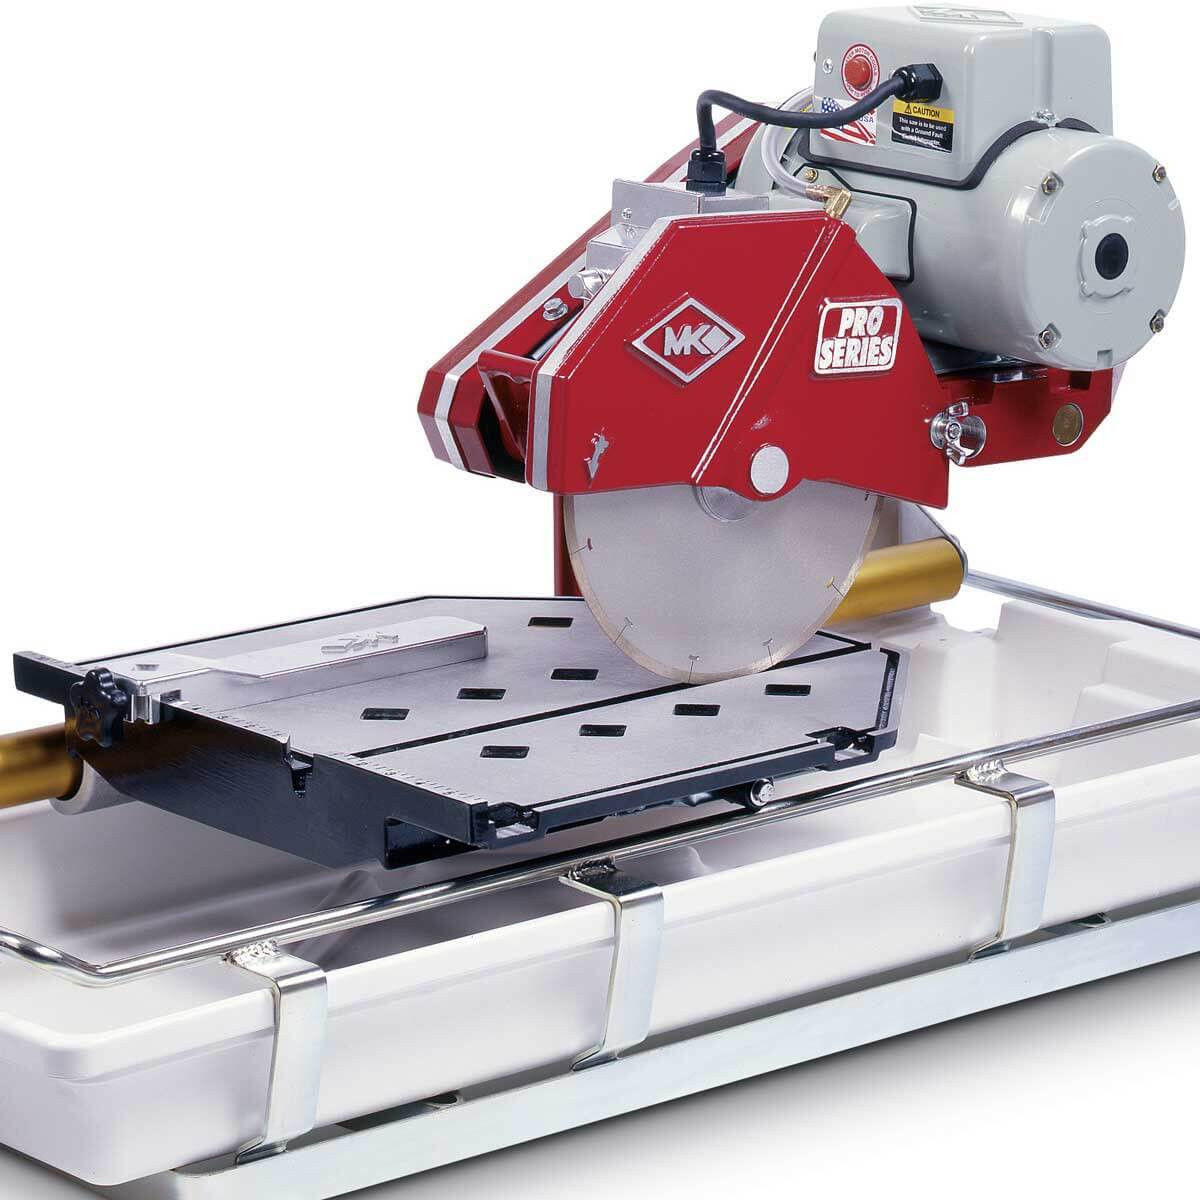 MK-101Pro 24 Tile Saw 10 inch blade capacity